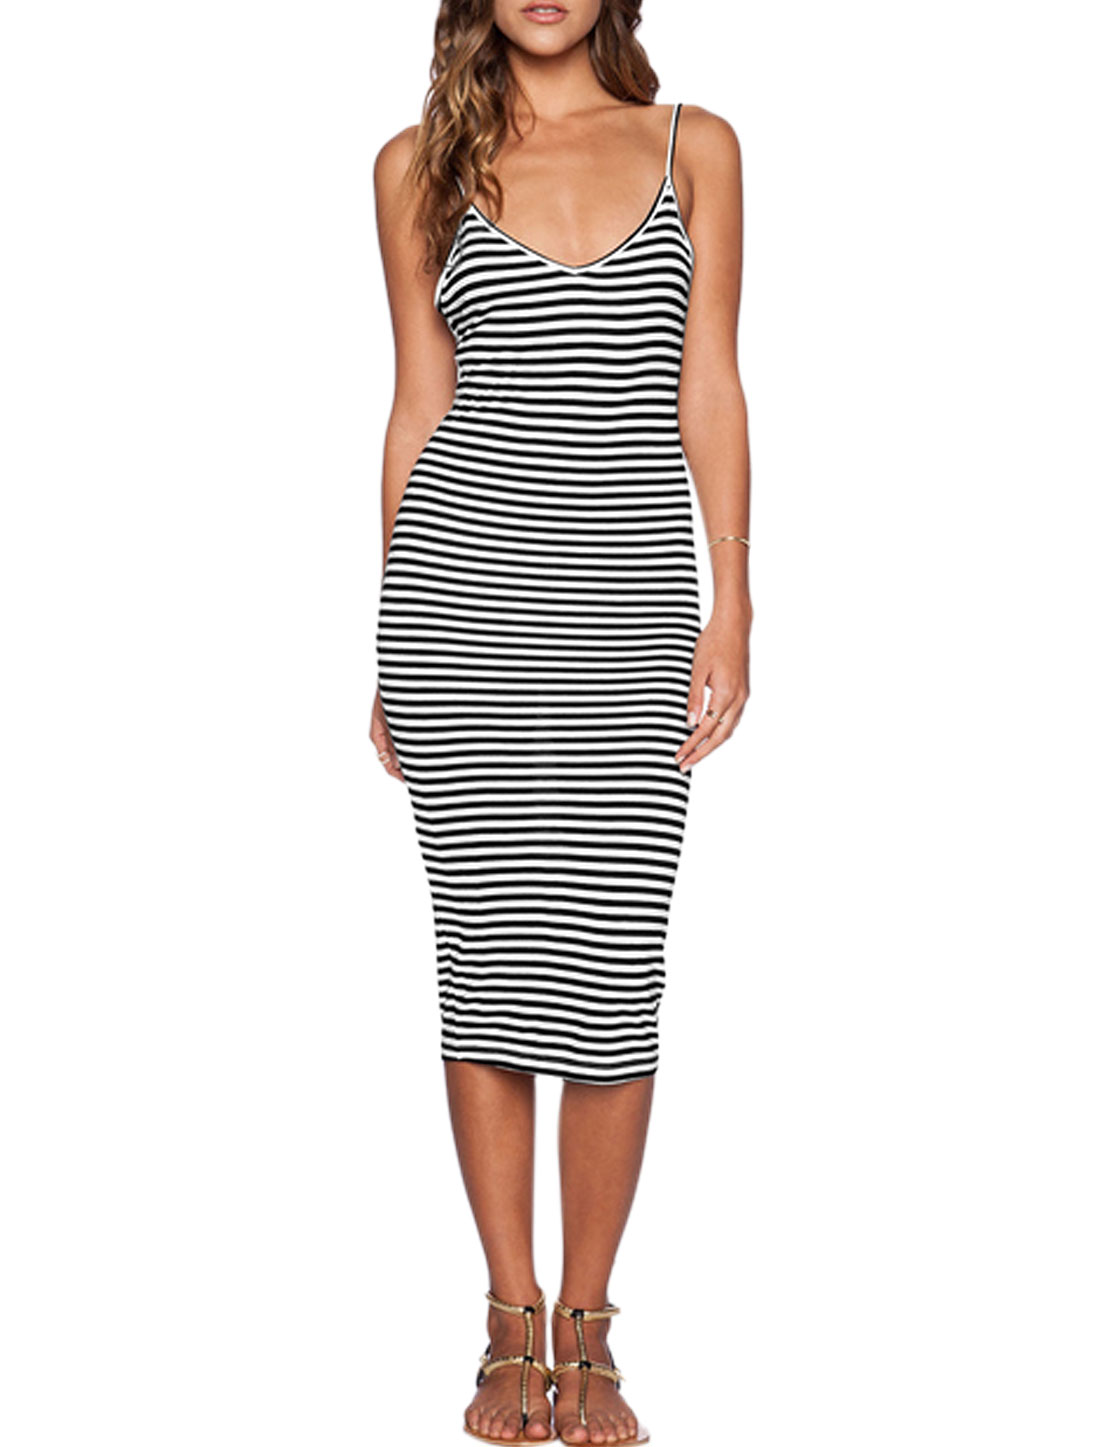 Woman Stripes Deep V Neck Open Back Unlined Sheath Dress Black White XS